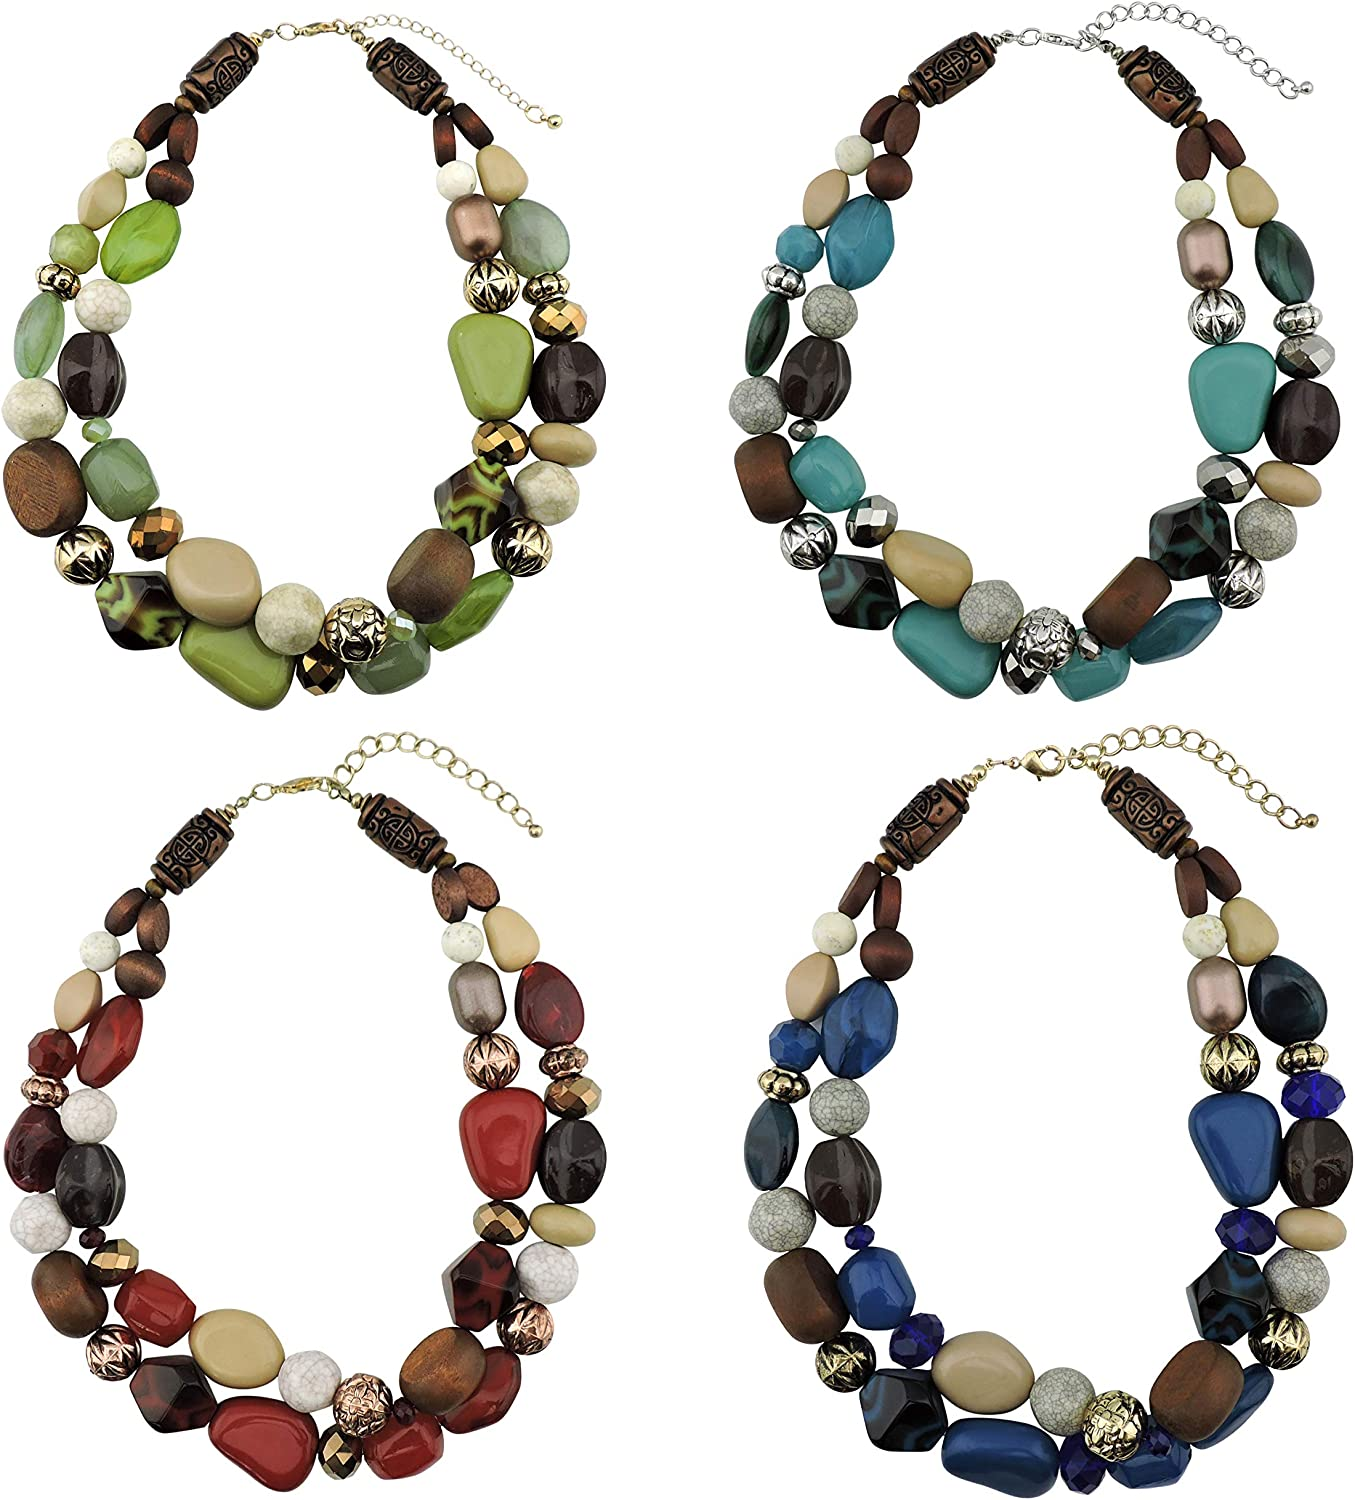 Plus Size Adjustable Acrylic Pearl Leather Necklace Gifts for Girls Gifts for Her